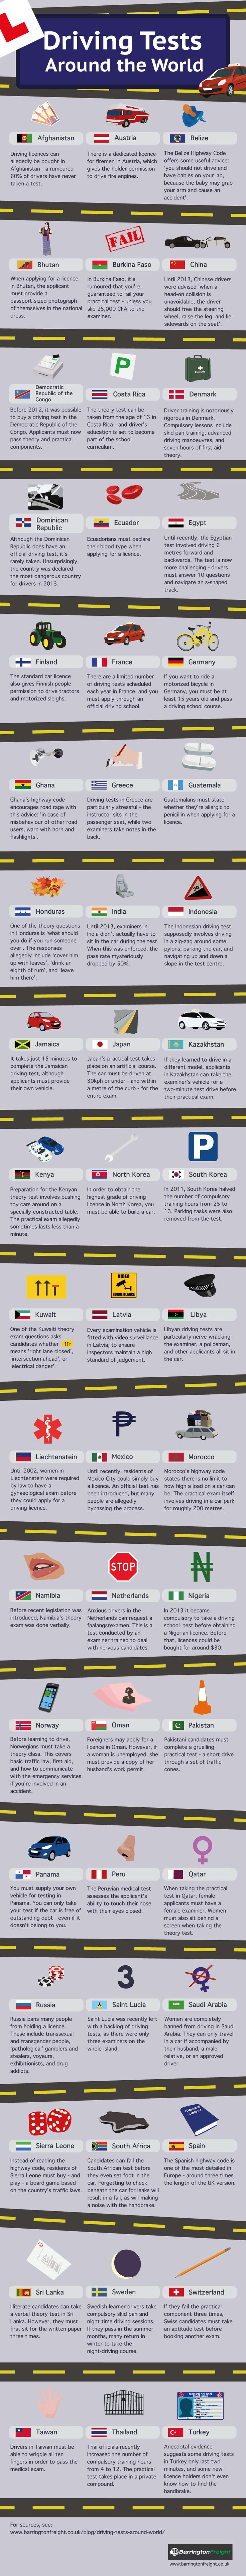 36 best Car Infographics images on Pinterest | Car stuff, Autos and ...